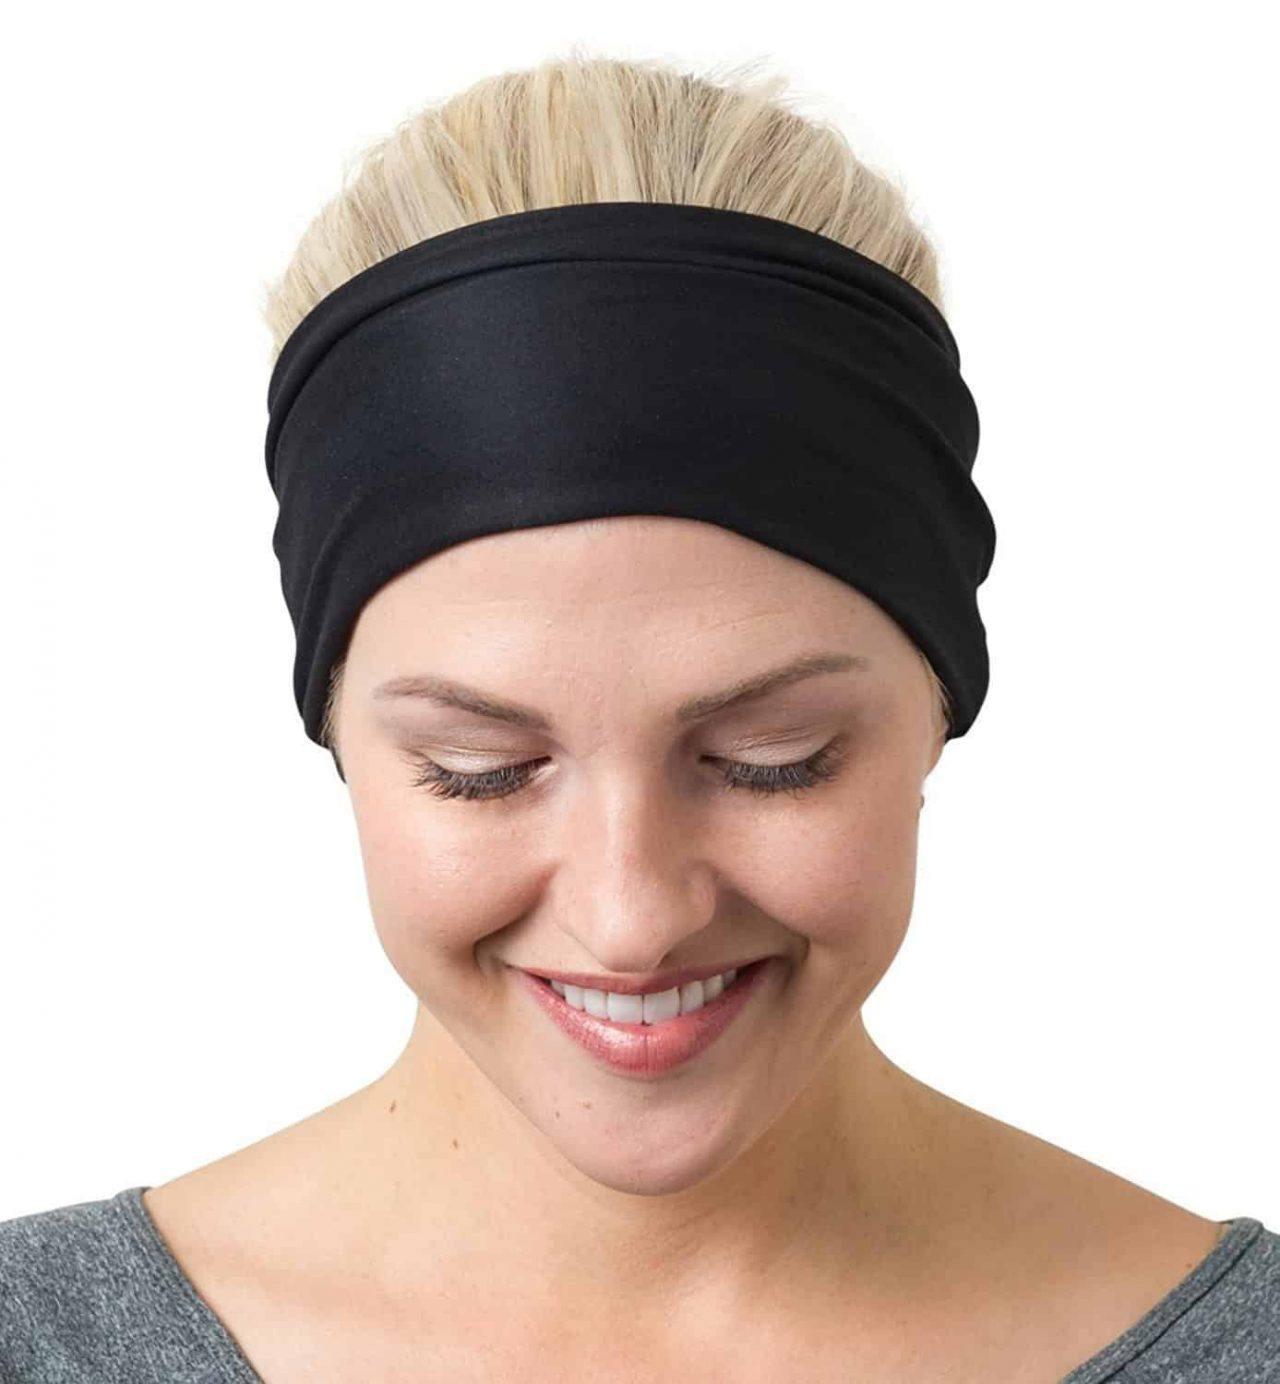 fitness headbands